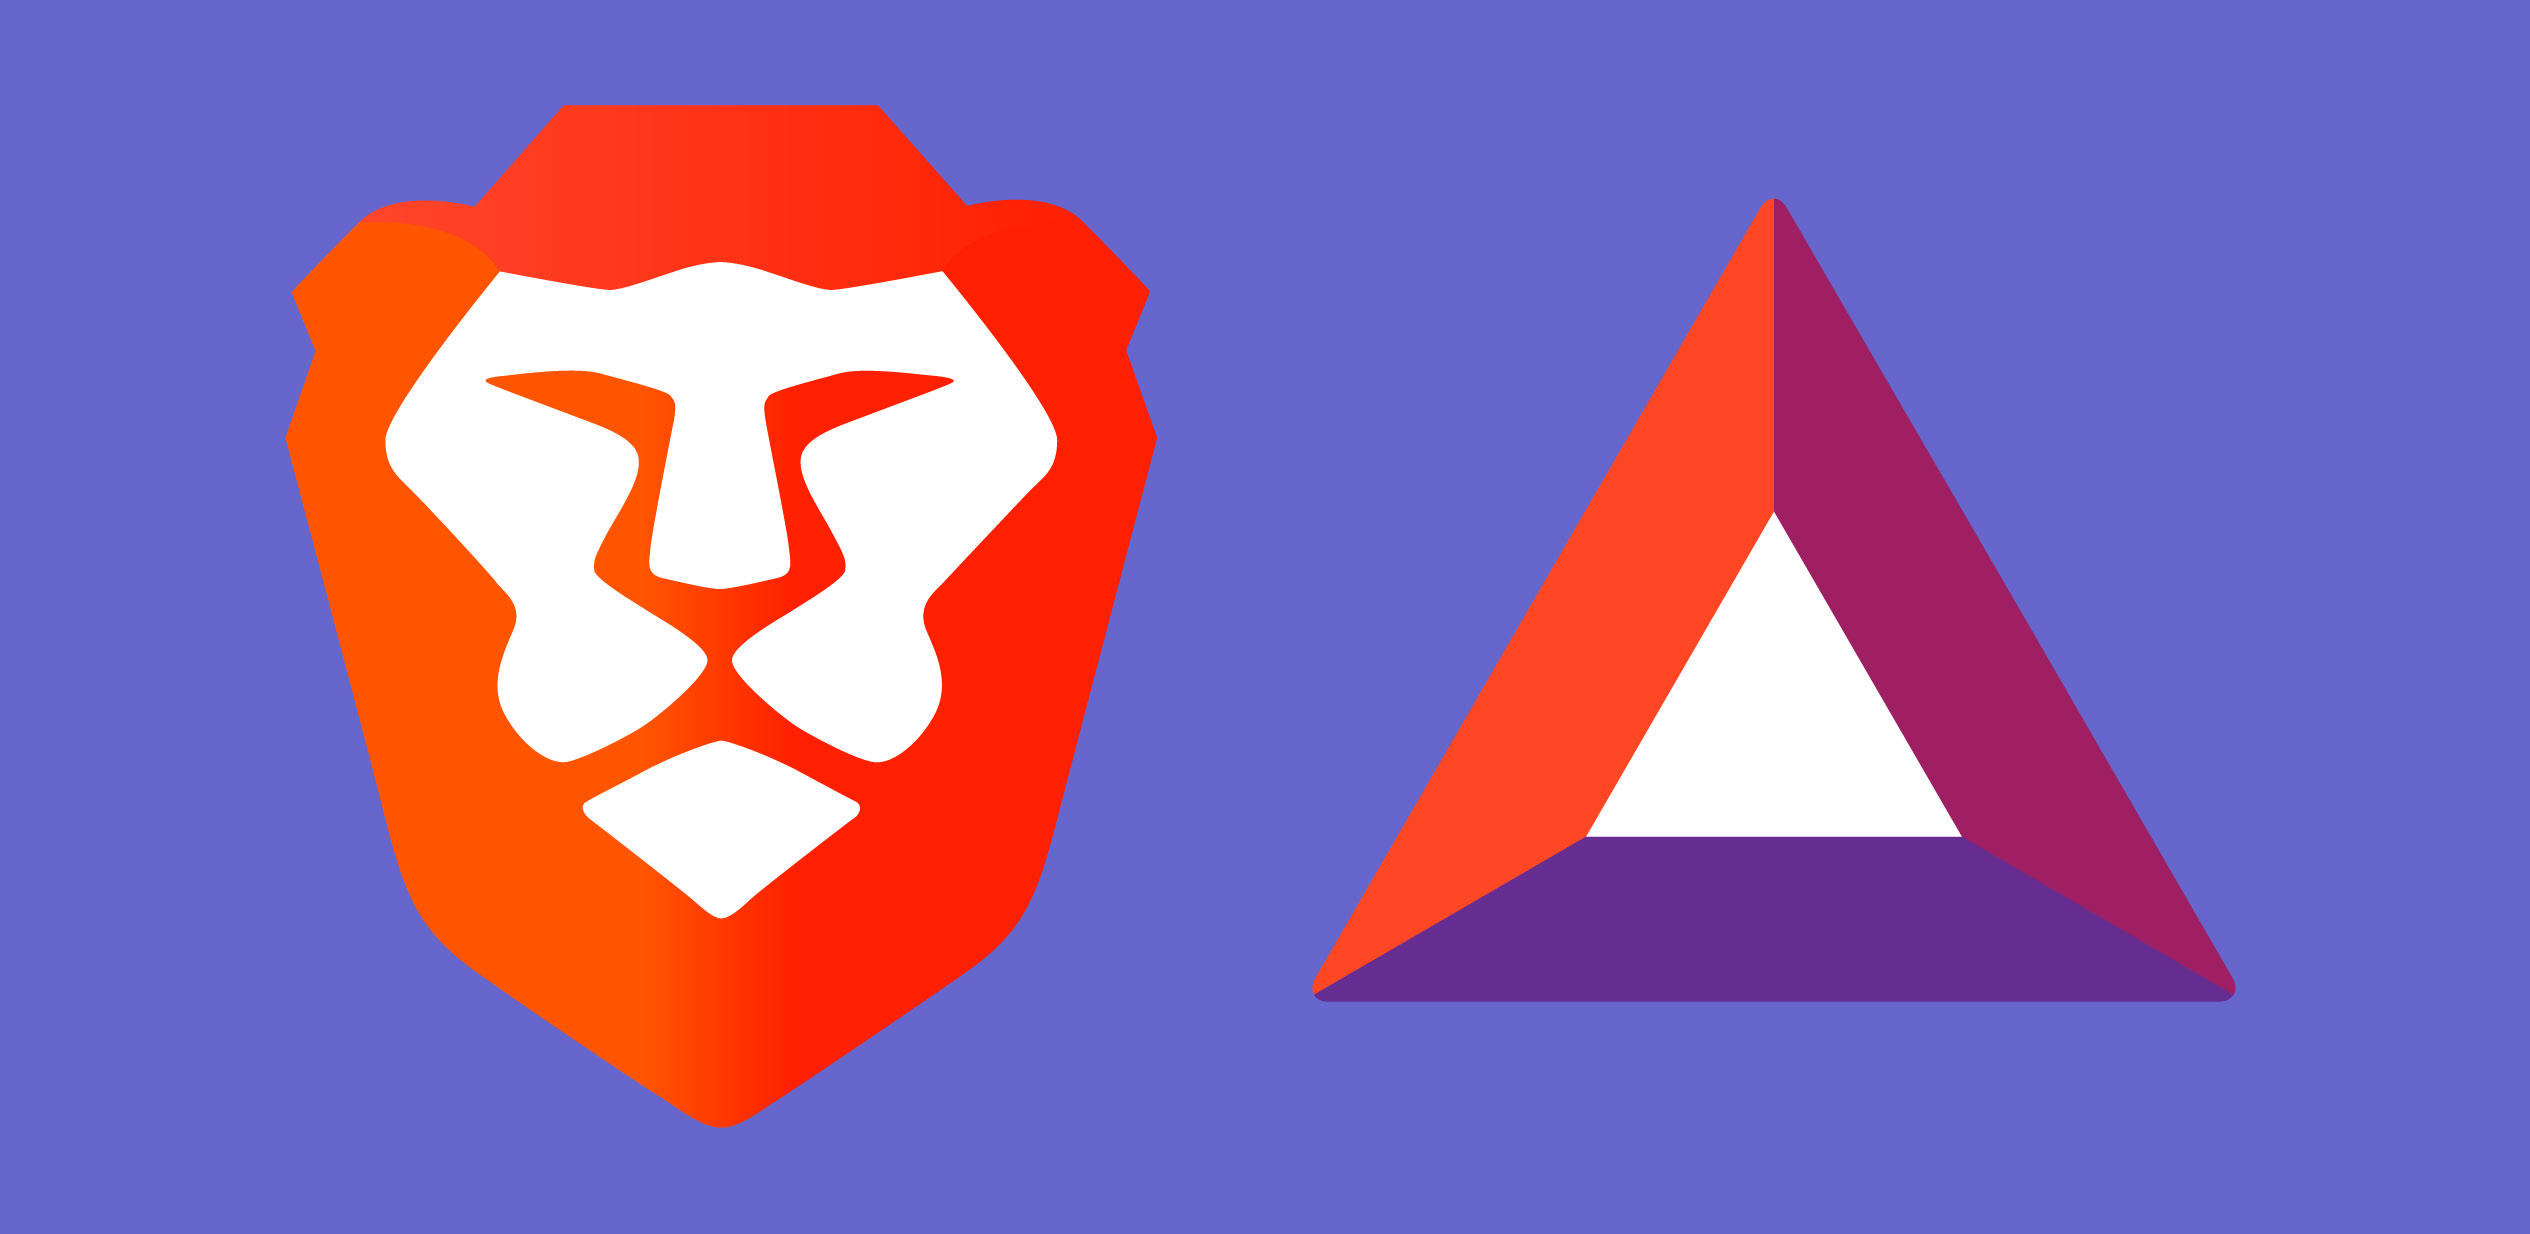 The Brave Rewards system is designed to reduce ad fraud, malvertising, and privacy invasion.